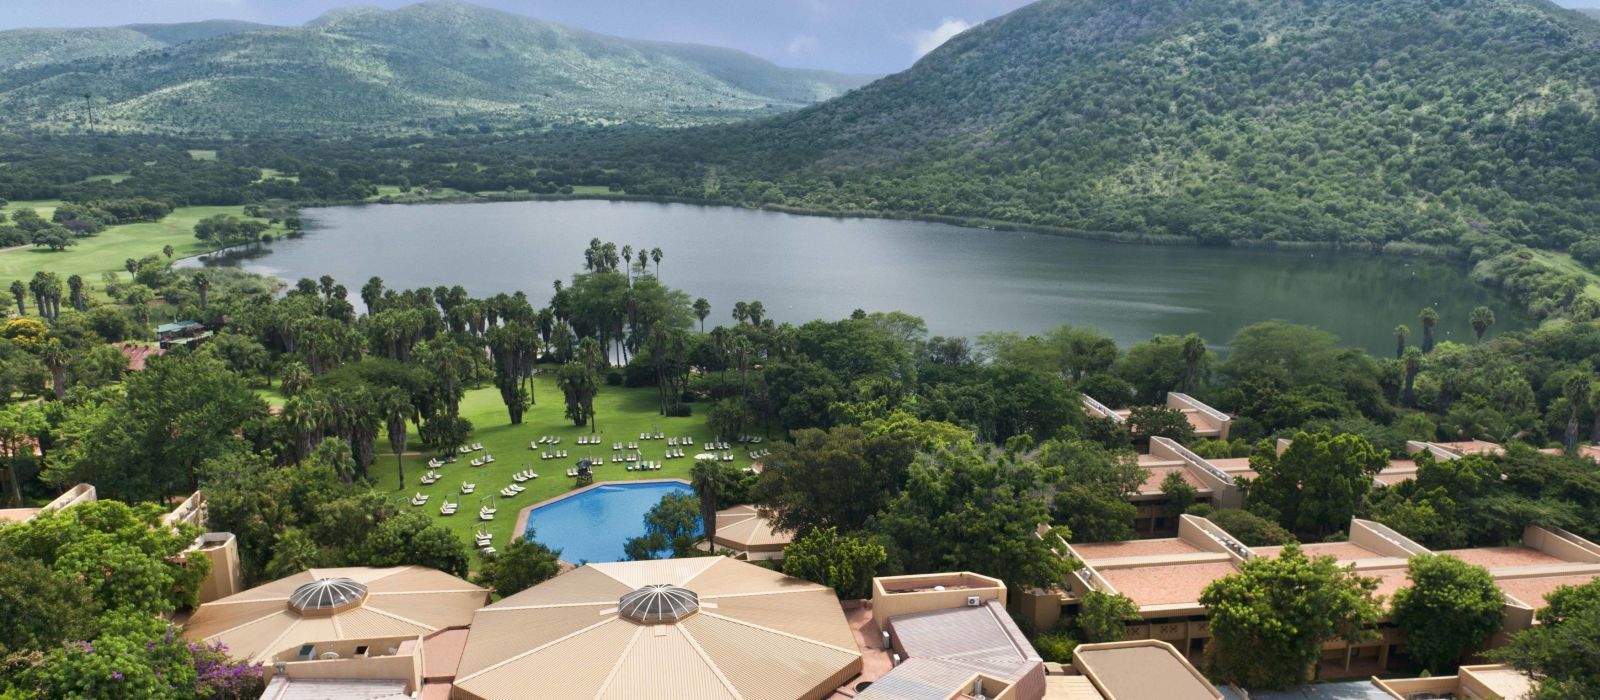 Destination Sun City South Africa